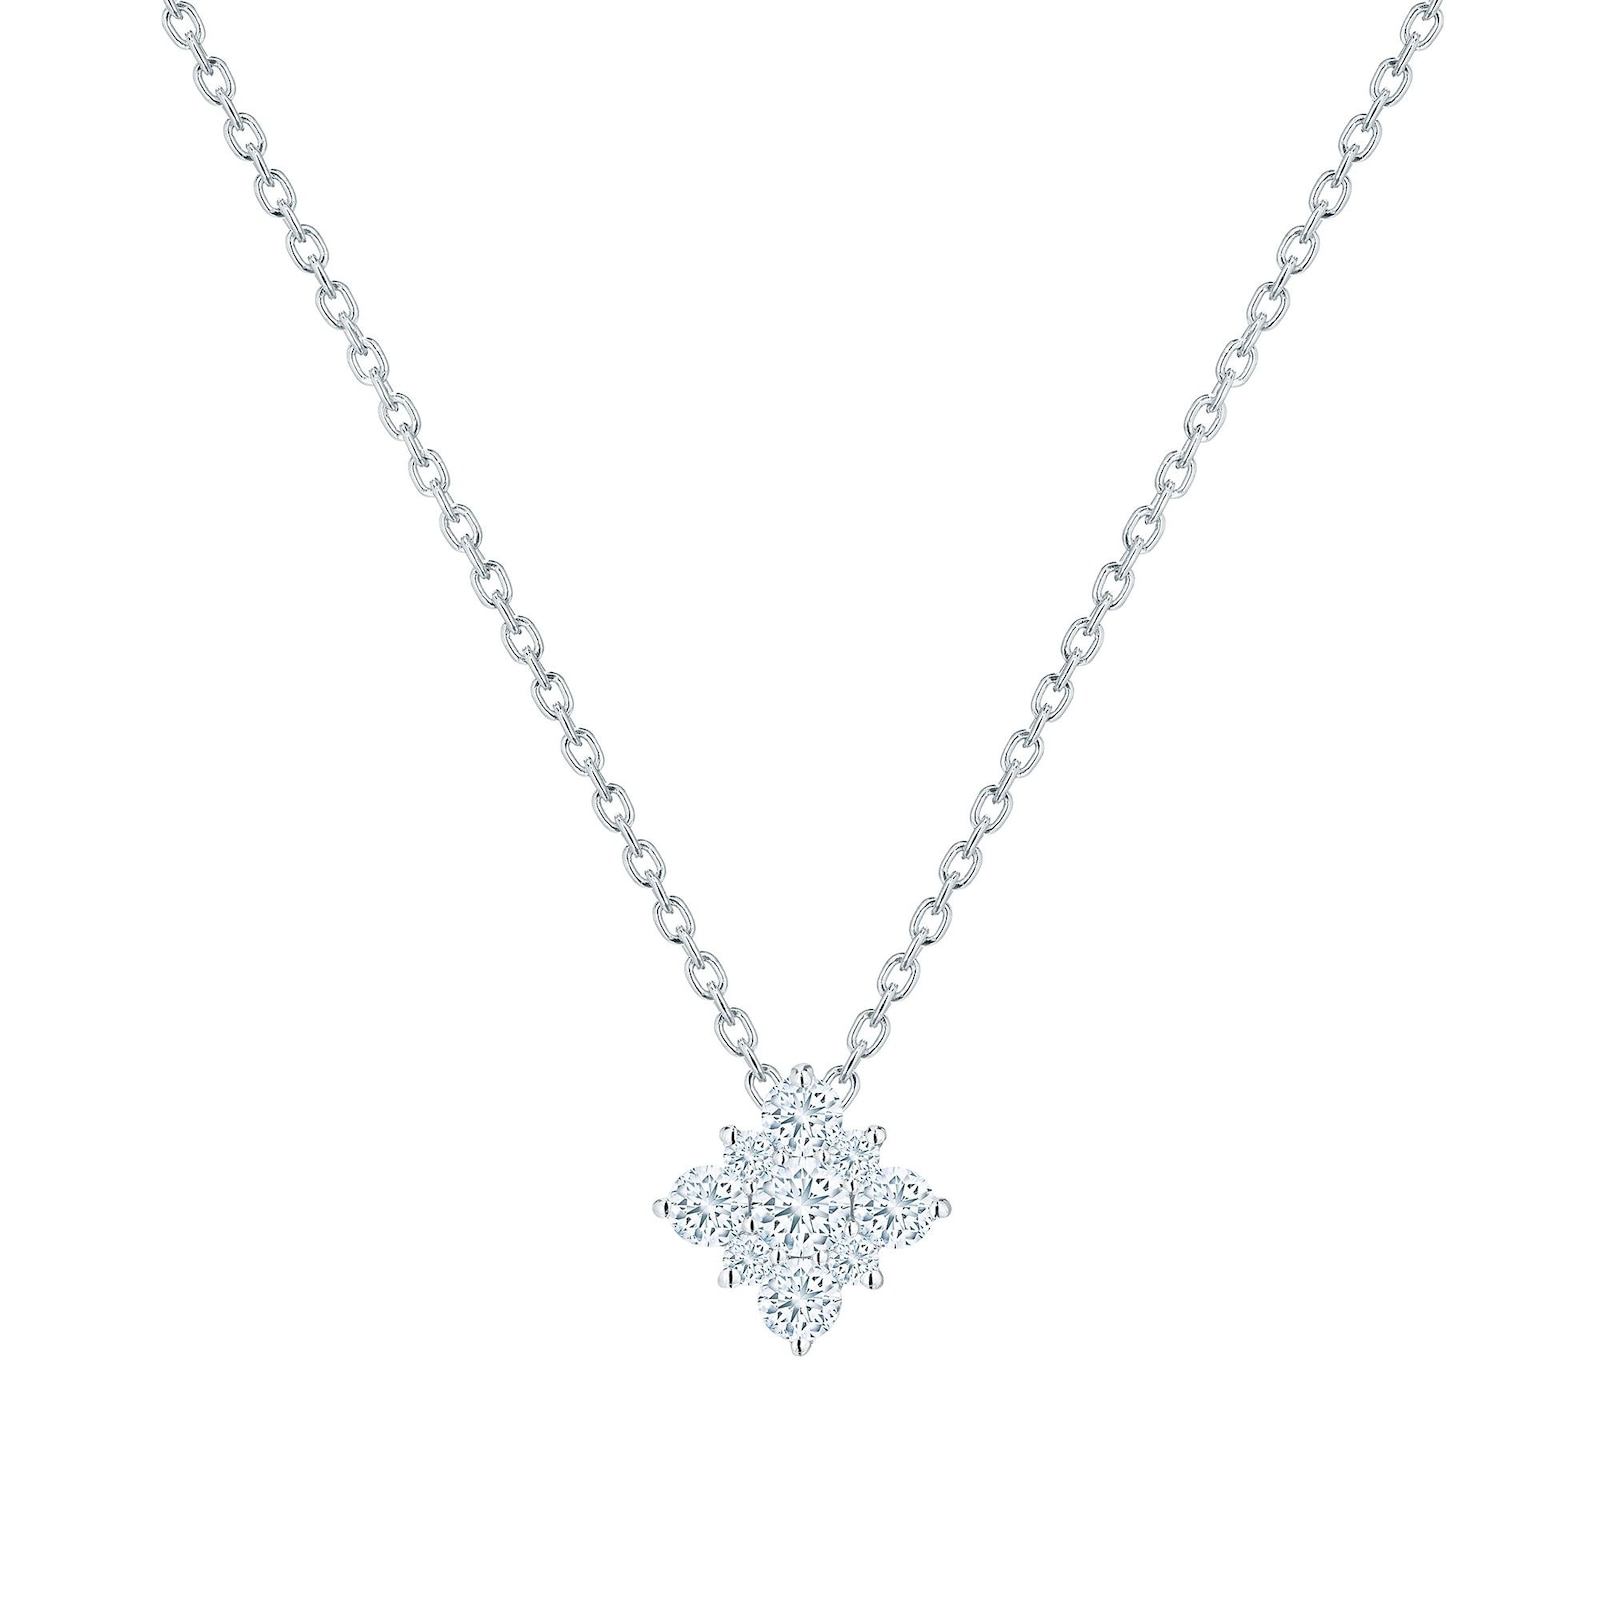 Birks Snowflake Diamond Necklace